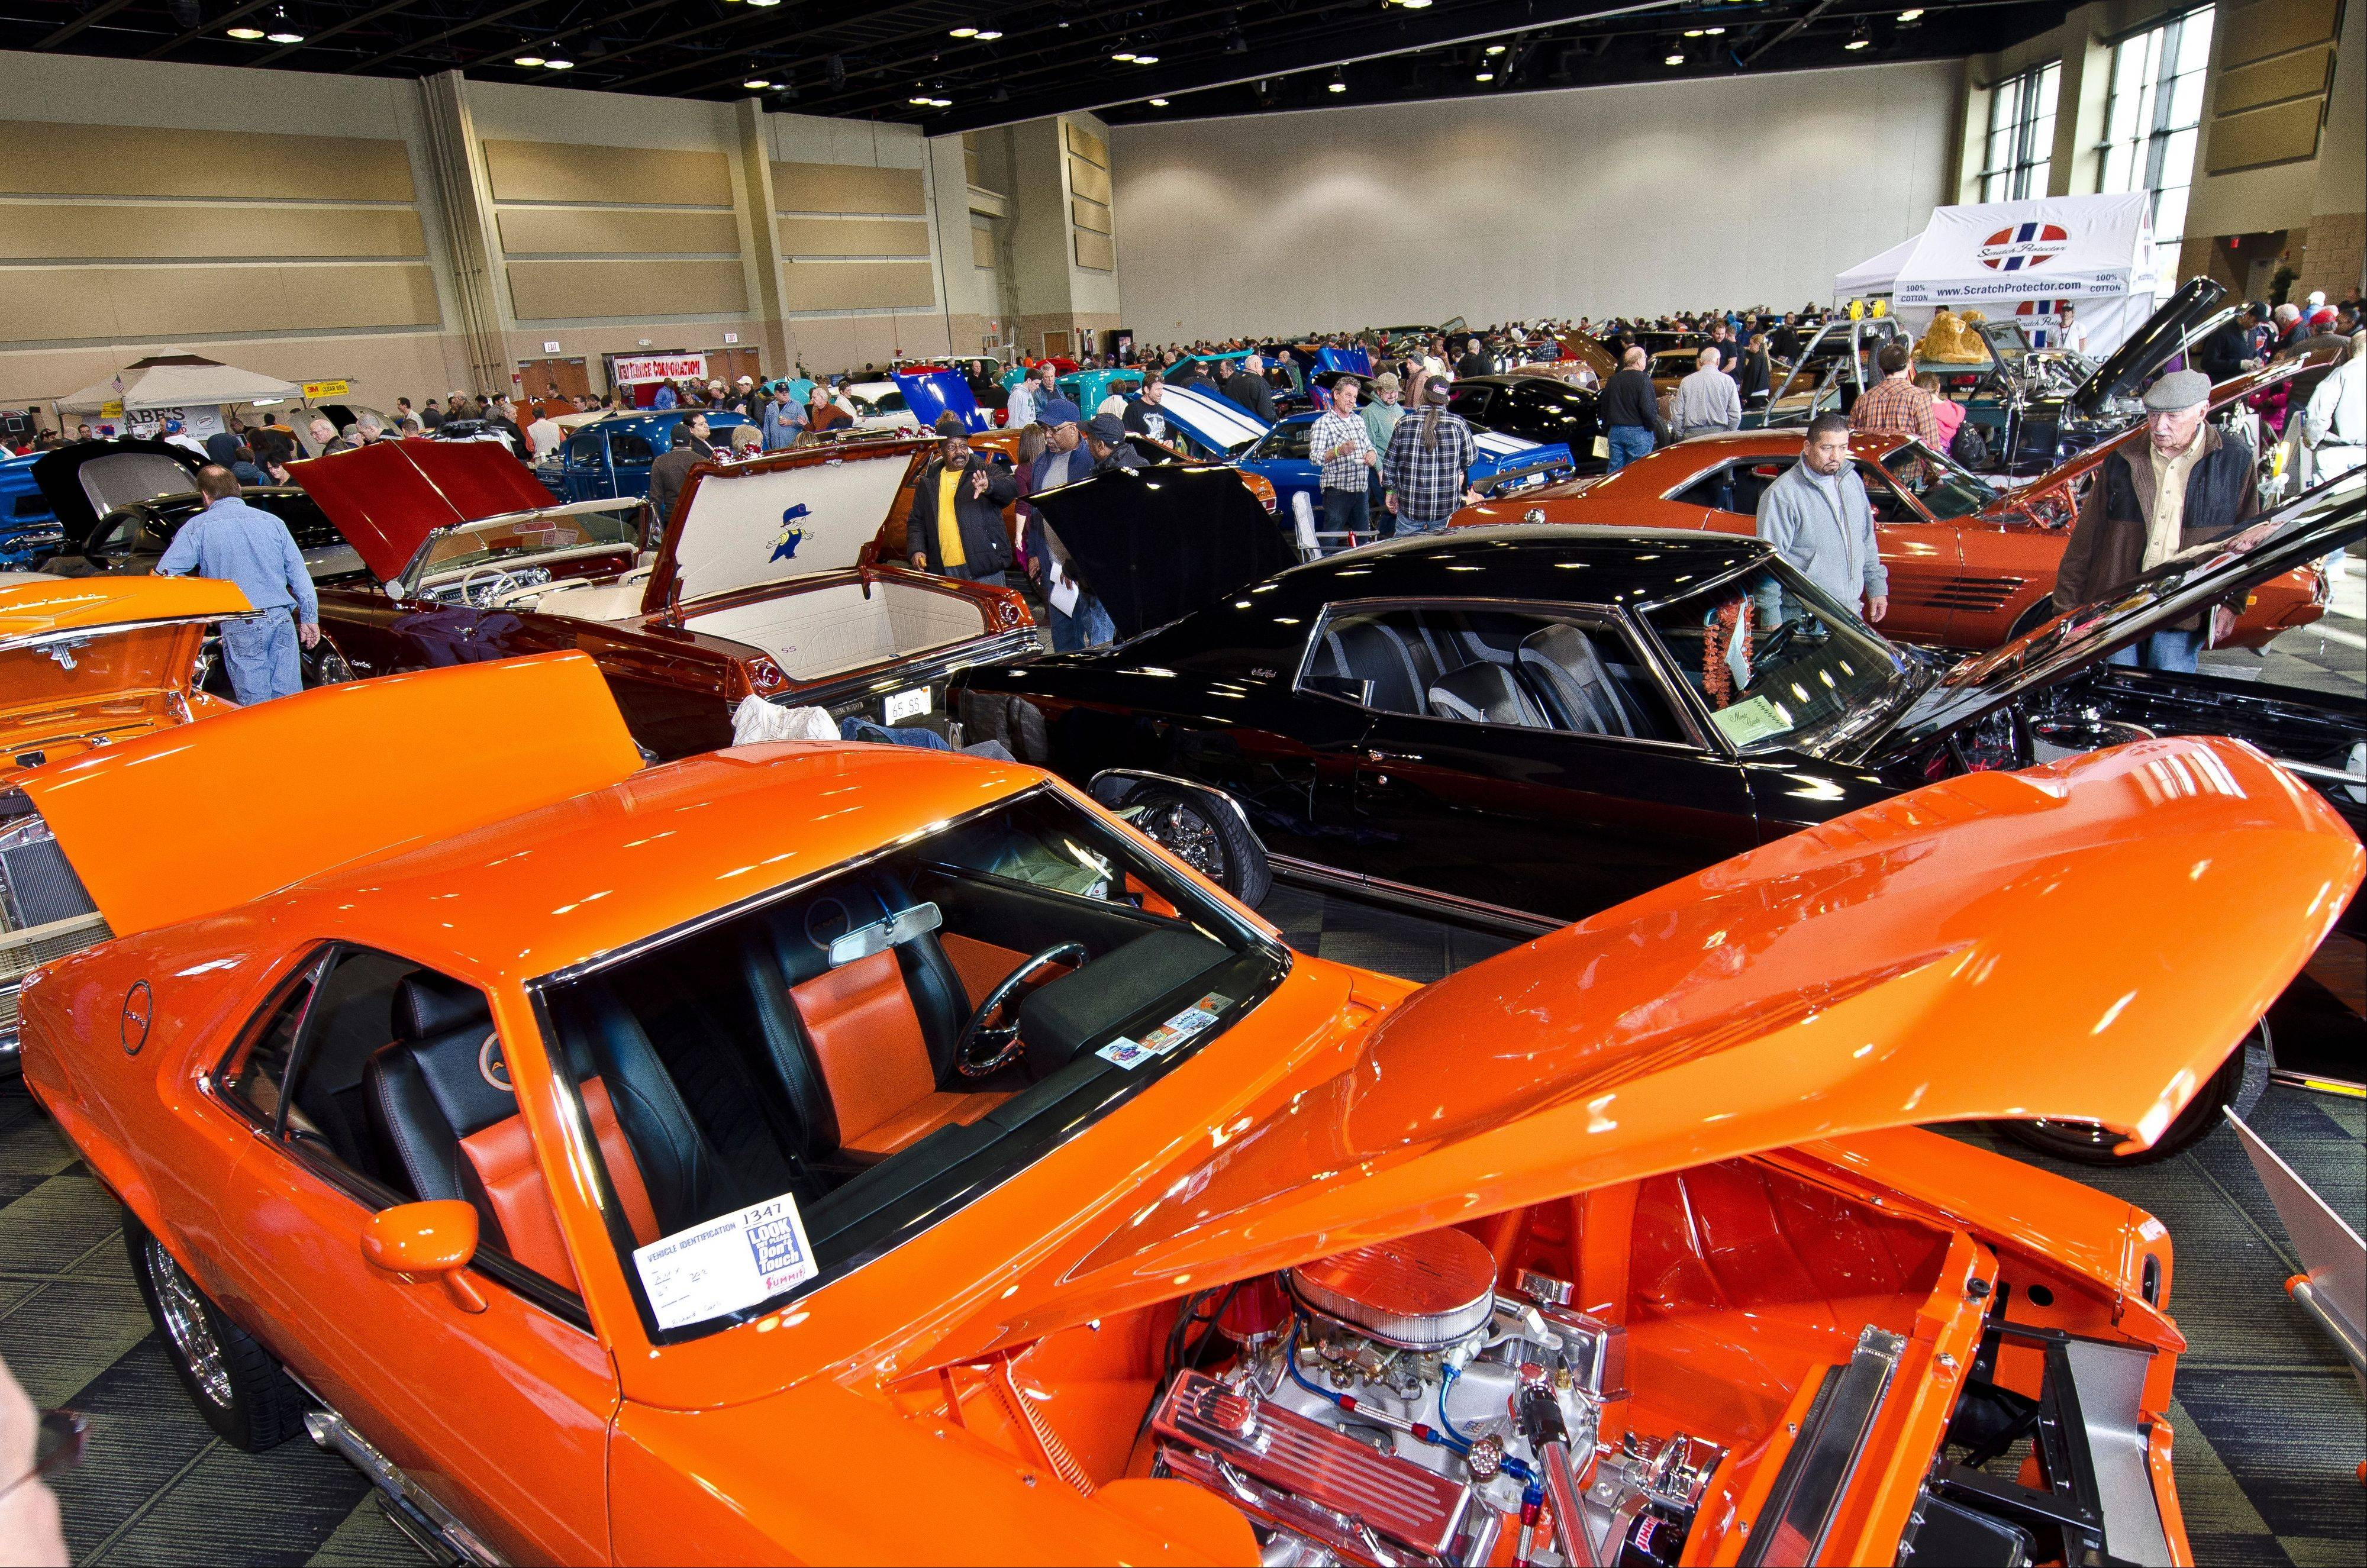 Many car enthusiasts displayed their work at the third annual Custom Rides Car Show and Expo in Tinley Park.